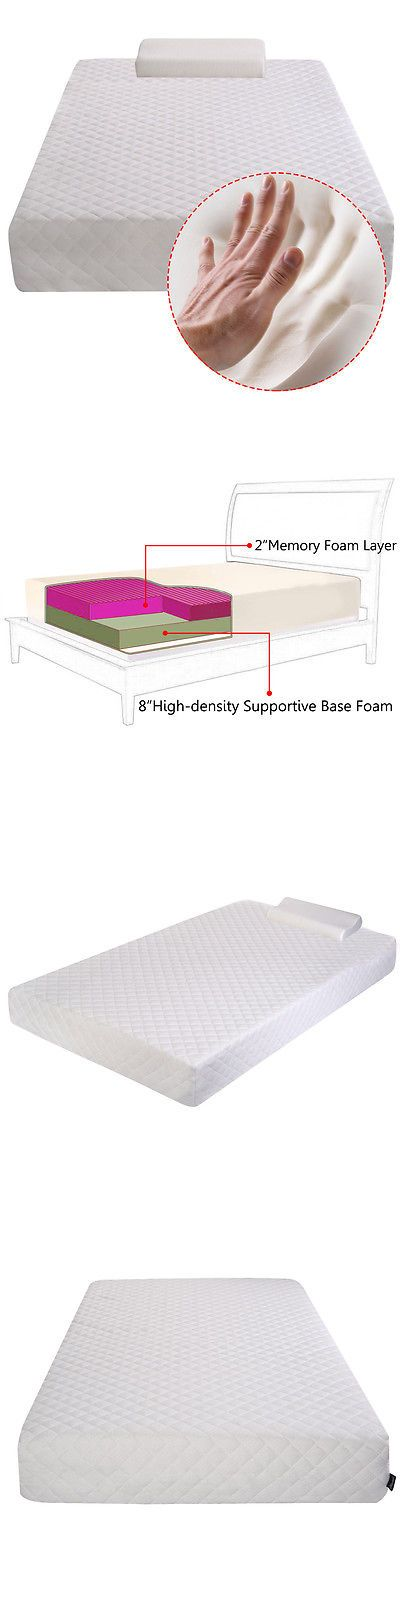 Bedding: New Twin Size 10 Memory Foam Mattress Bed Pad Topper Free Pillow BUY IT NOW ONLY: $139.99